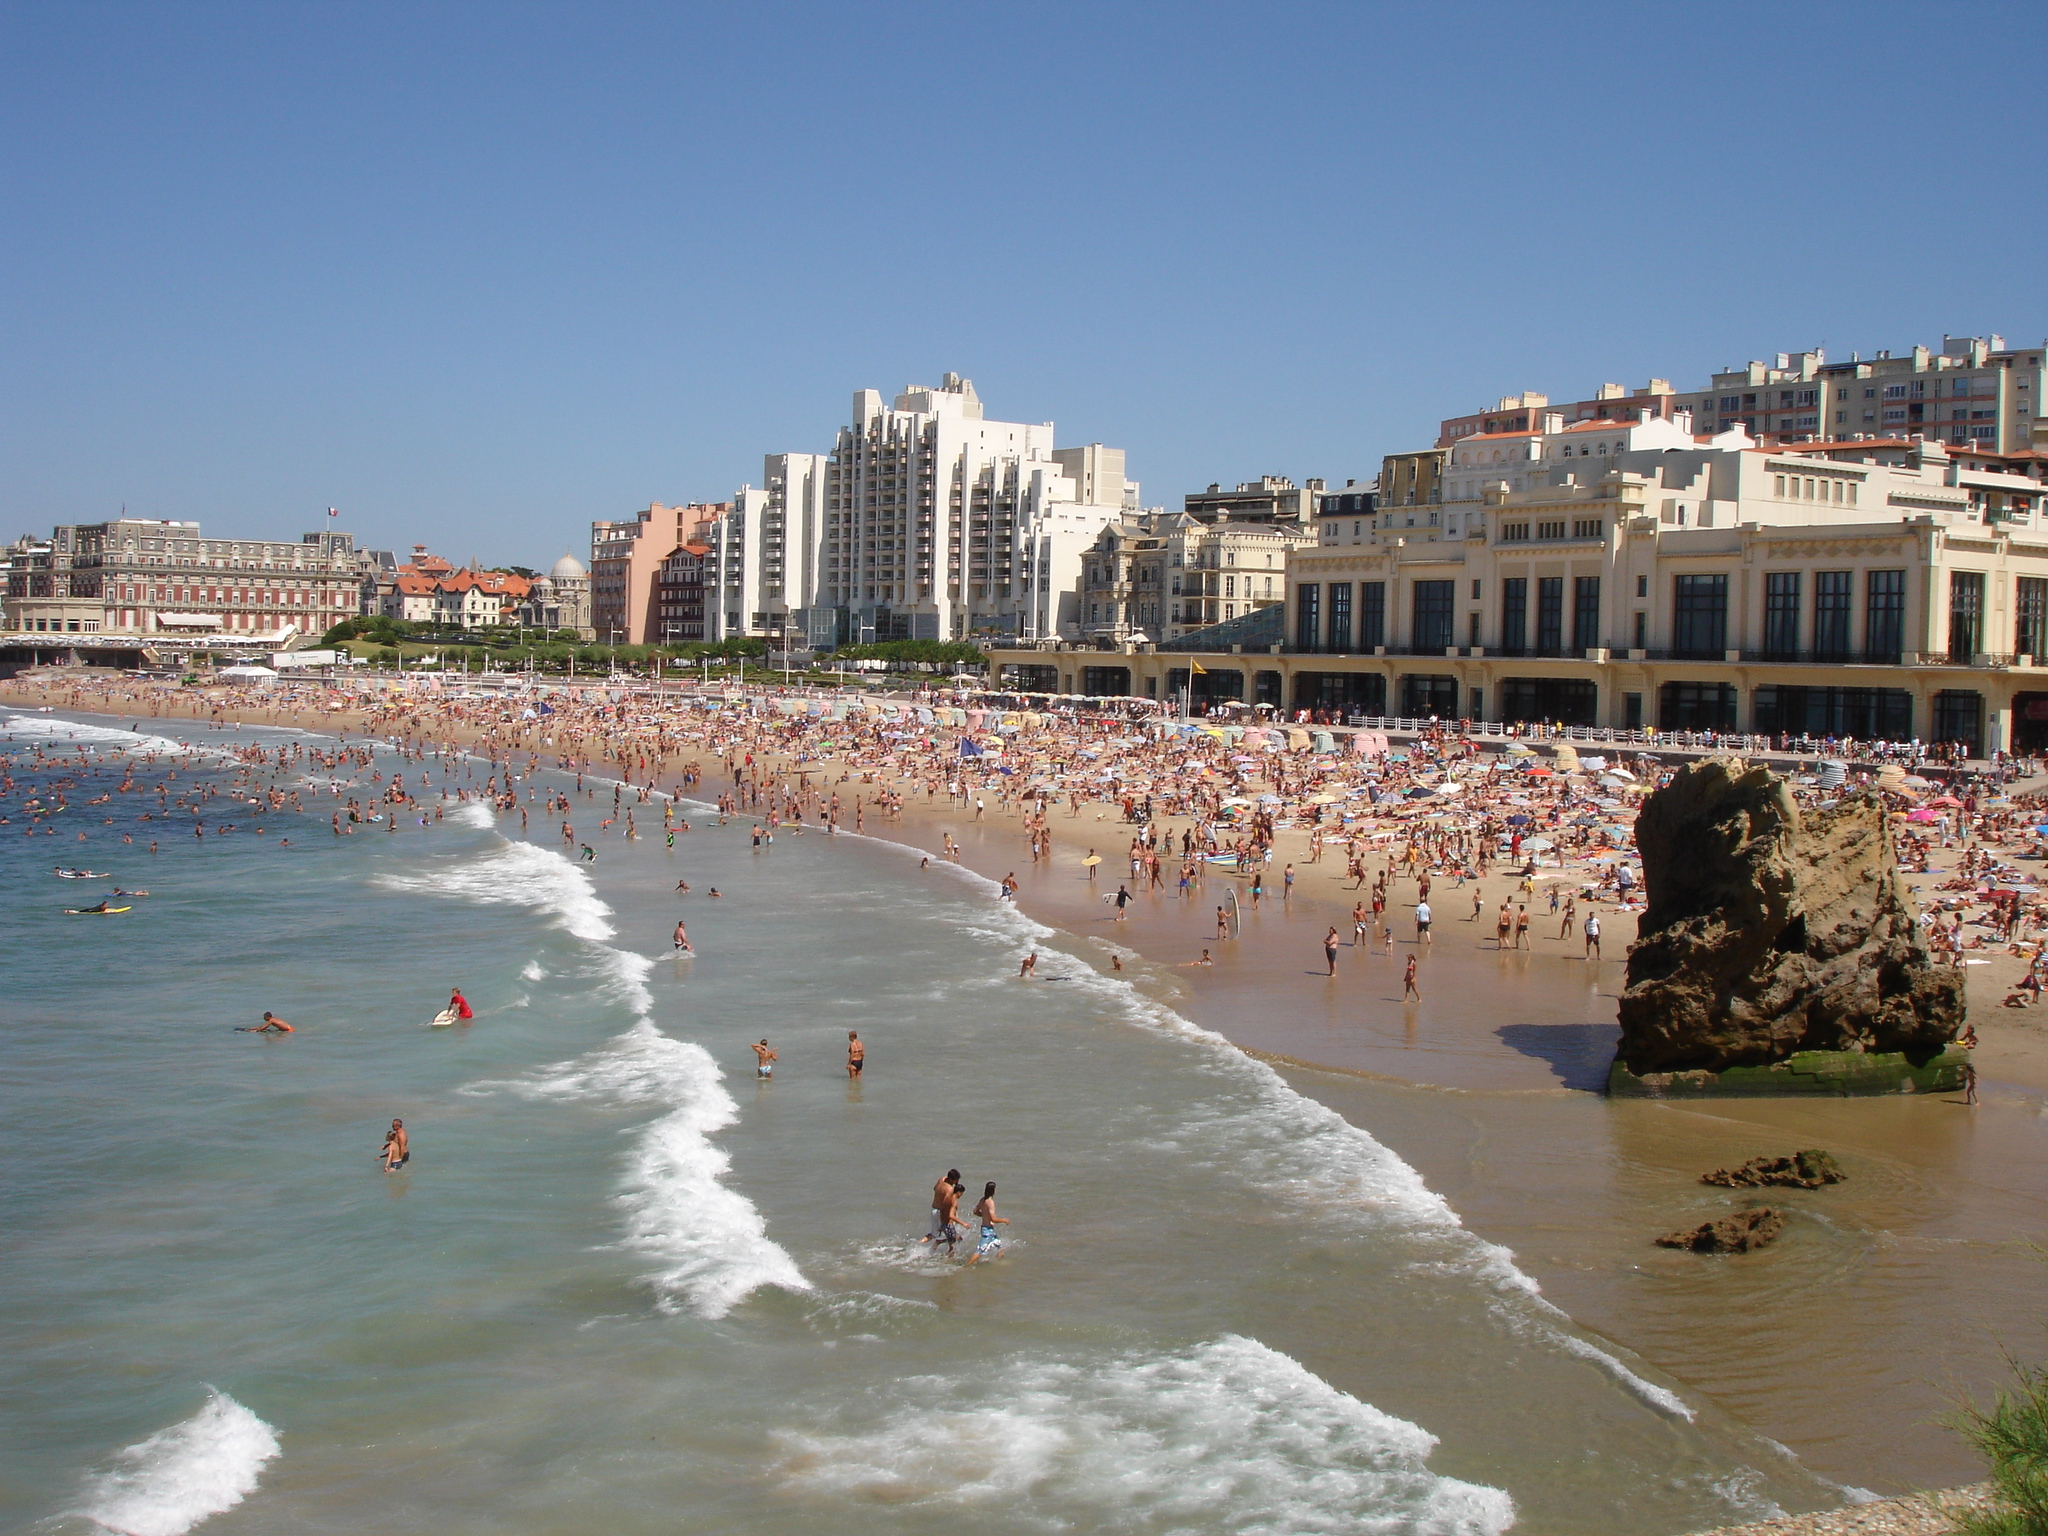 Am nagement du territoire comment biarritz 64 est for Piscine municipale biarritz